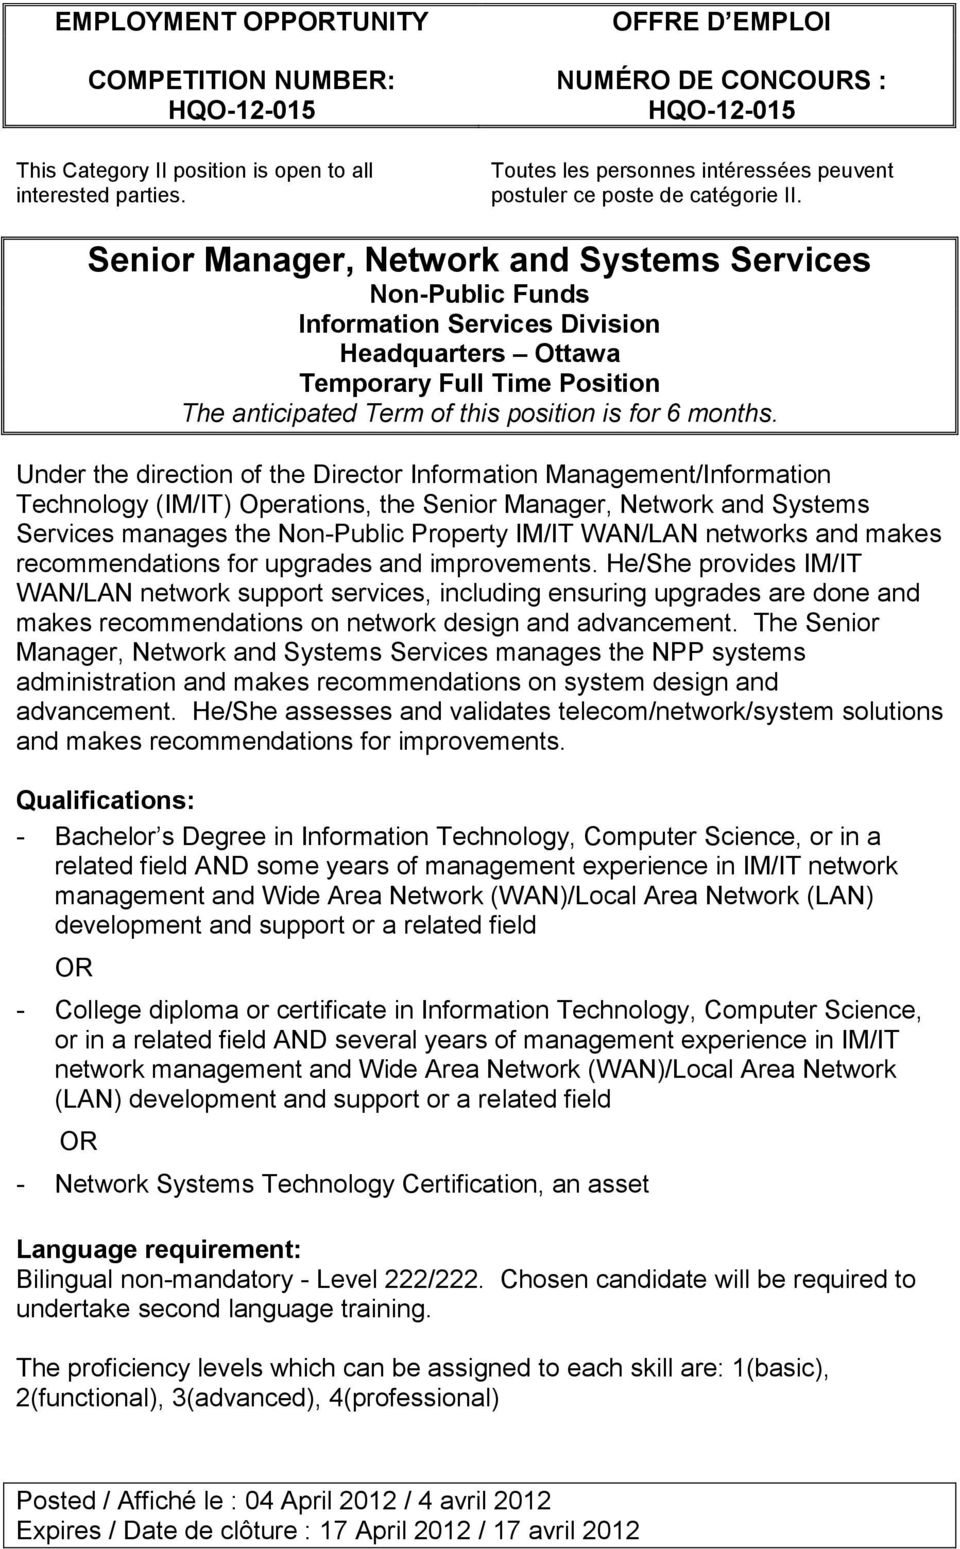 Under the direction of the Director Information Management/Information Technology (IM/IT) Operations, the Senior Manager, Network and Systems Services manages the Non-Public Property IM/IT WAN/LAN